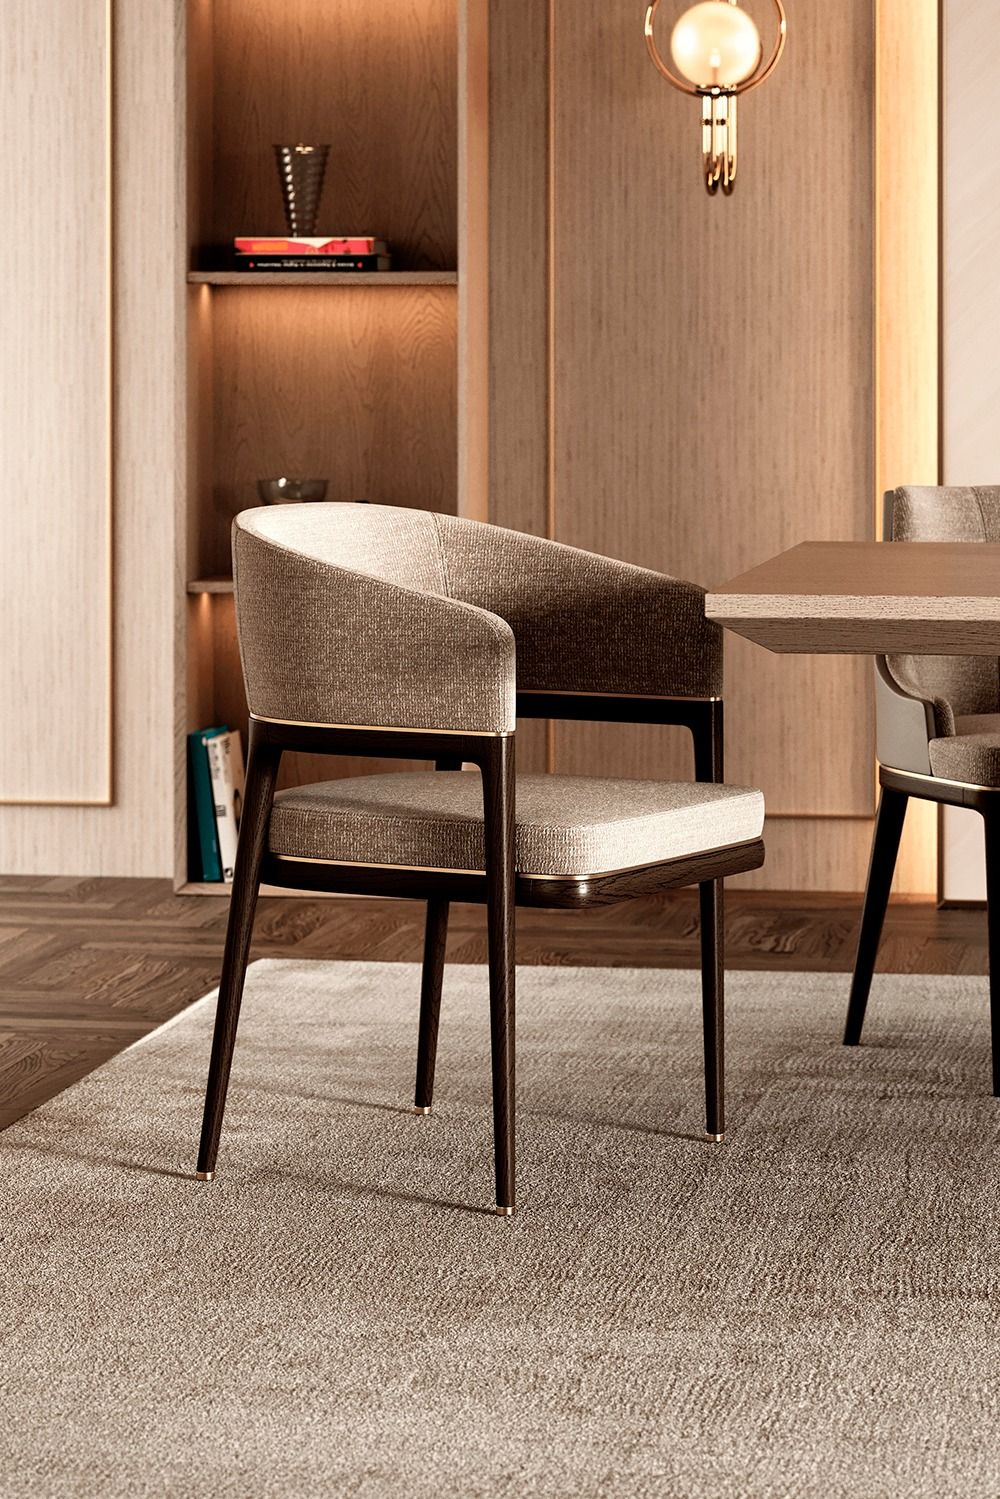 Mark Dining Chair By Aster.  #aster #boundlessexpressions #interiorismo #interior #luxurydesign #luxuryinteriordesign #luxury #modernarchitecture #interiordesigner #interior4all #designproject #homeinteriors #homedecor #interiors #interiordecor #homefurniture #interiodesignproject #contemporarystyle #luxuryliving #contemporaryfurniture #interiordesign #designlover #furniture #timelessdesign #designproduct #furnituredesign #luxuryupholstery #diningchair #upholstery #diningroomdecor